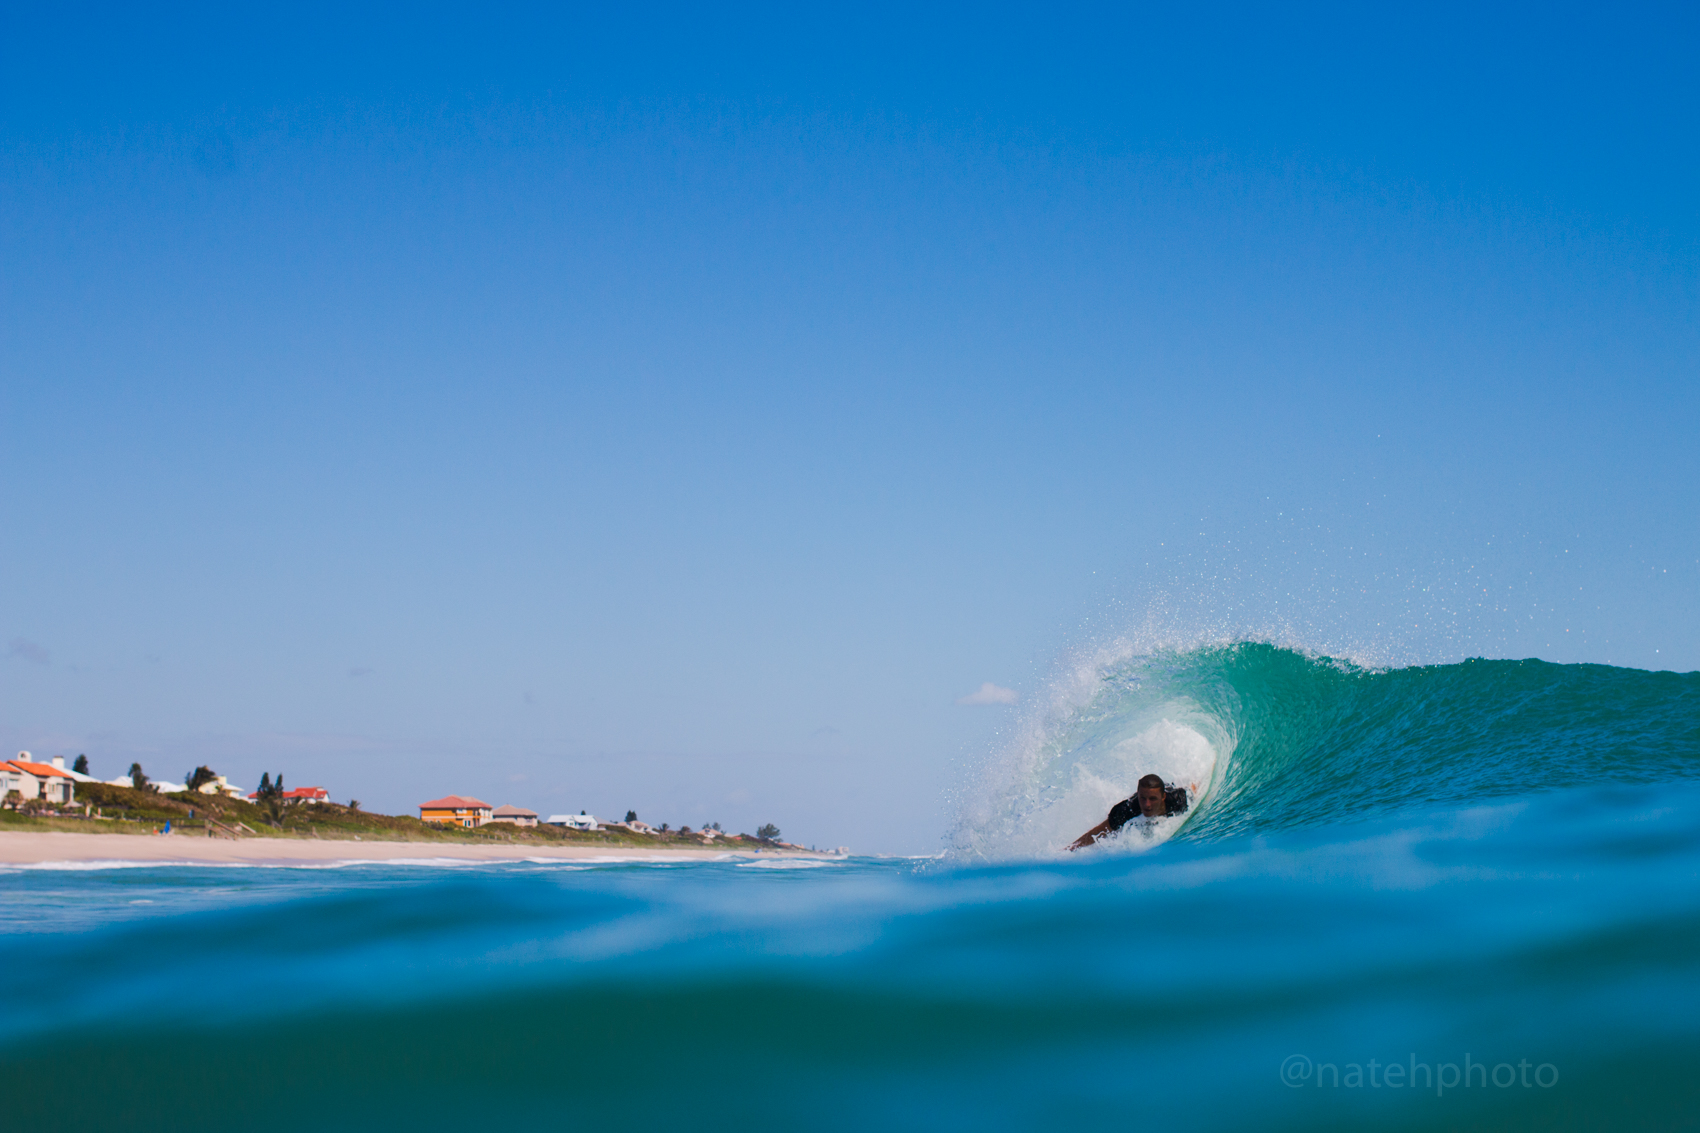 Chauncey Robinson at Spanish House, FL. Photo by Nathaniel Harrington (natehphoto)